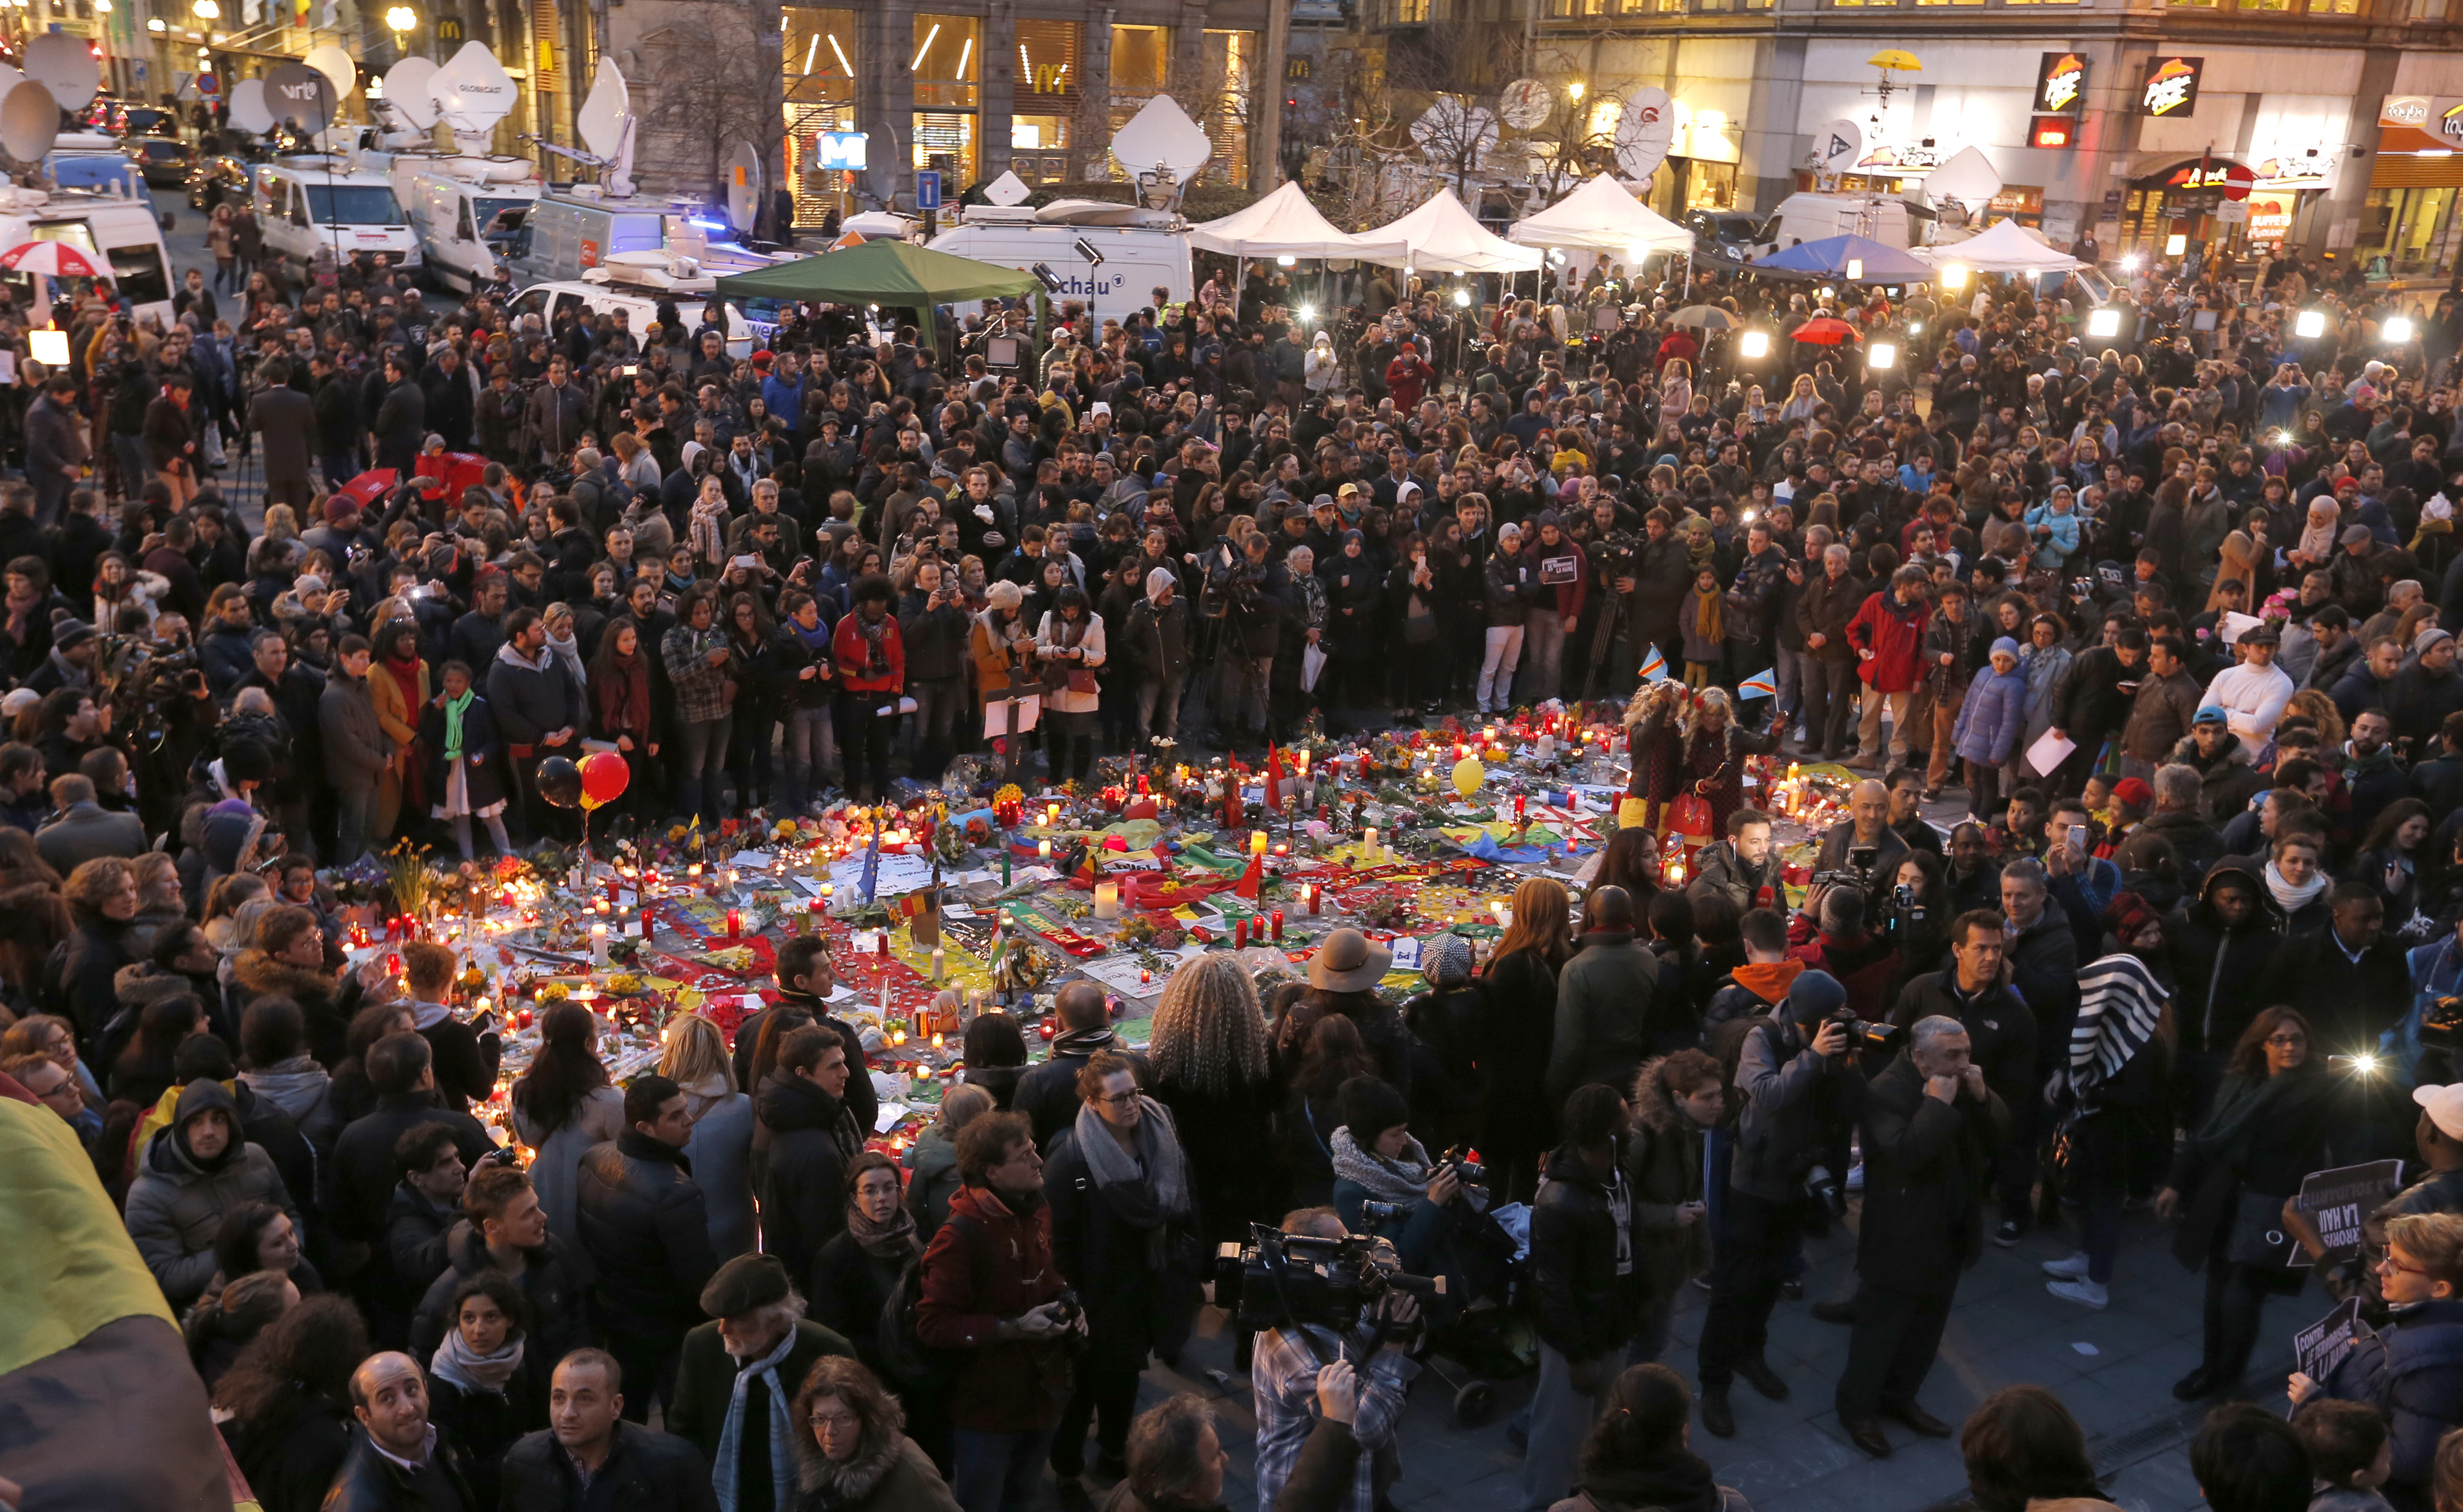 People attend a street memorial service near the old stock exchange in Brussels following Tuesday's bomb attacks in Brussels, Belgium, March 23, 2016.     REUTERS/Vincent Kessler - RTSBY63